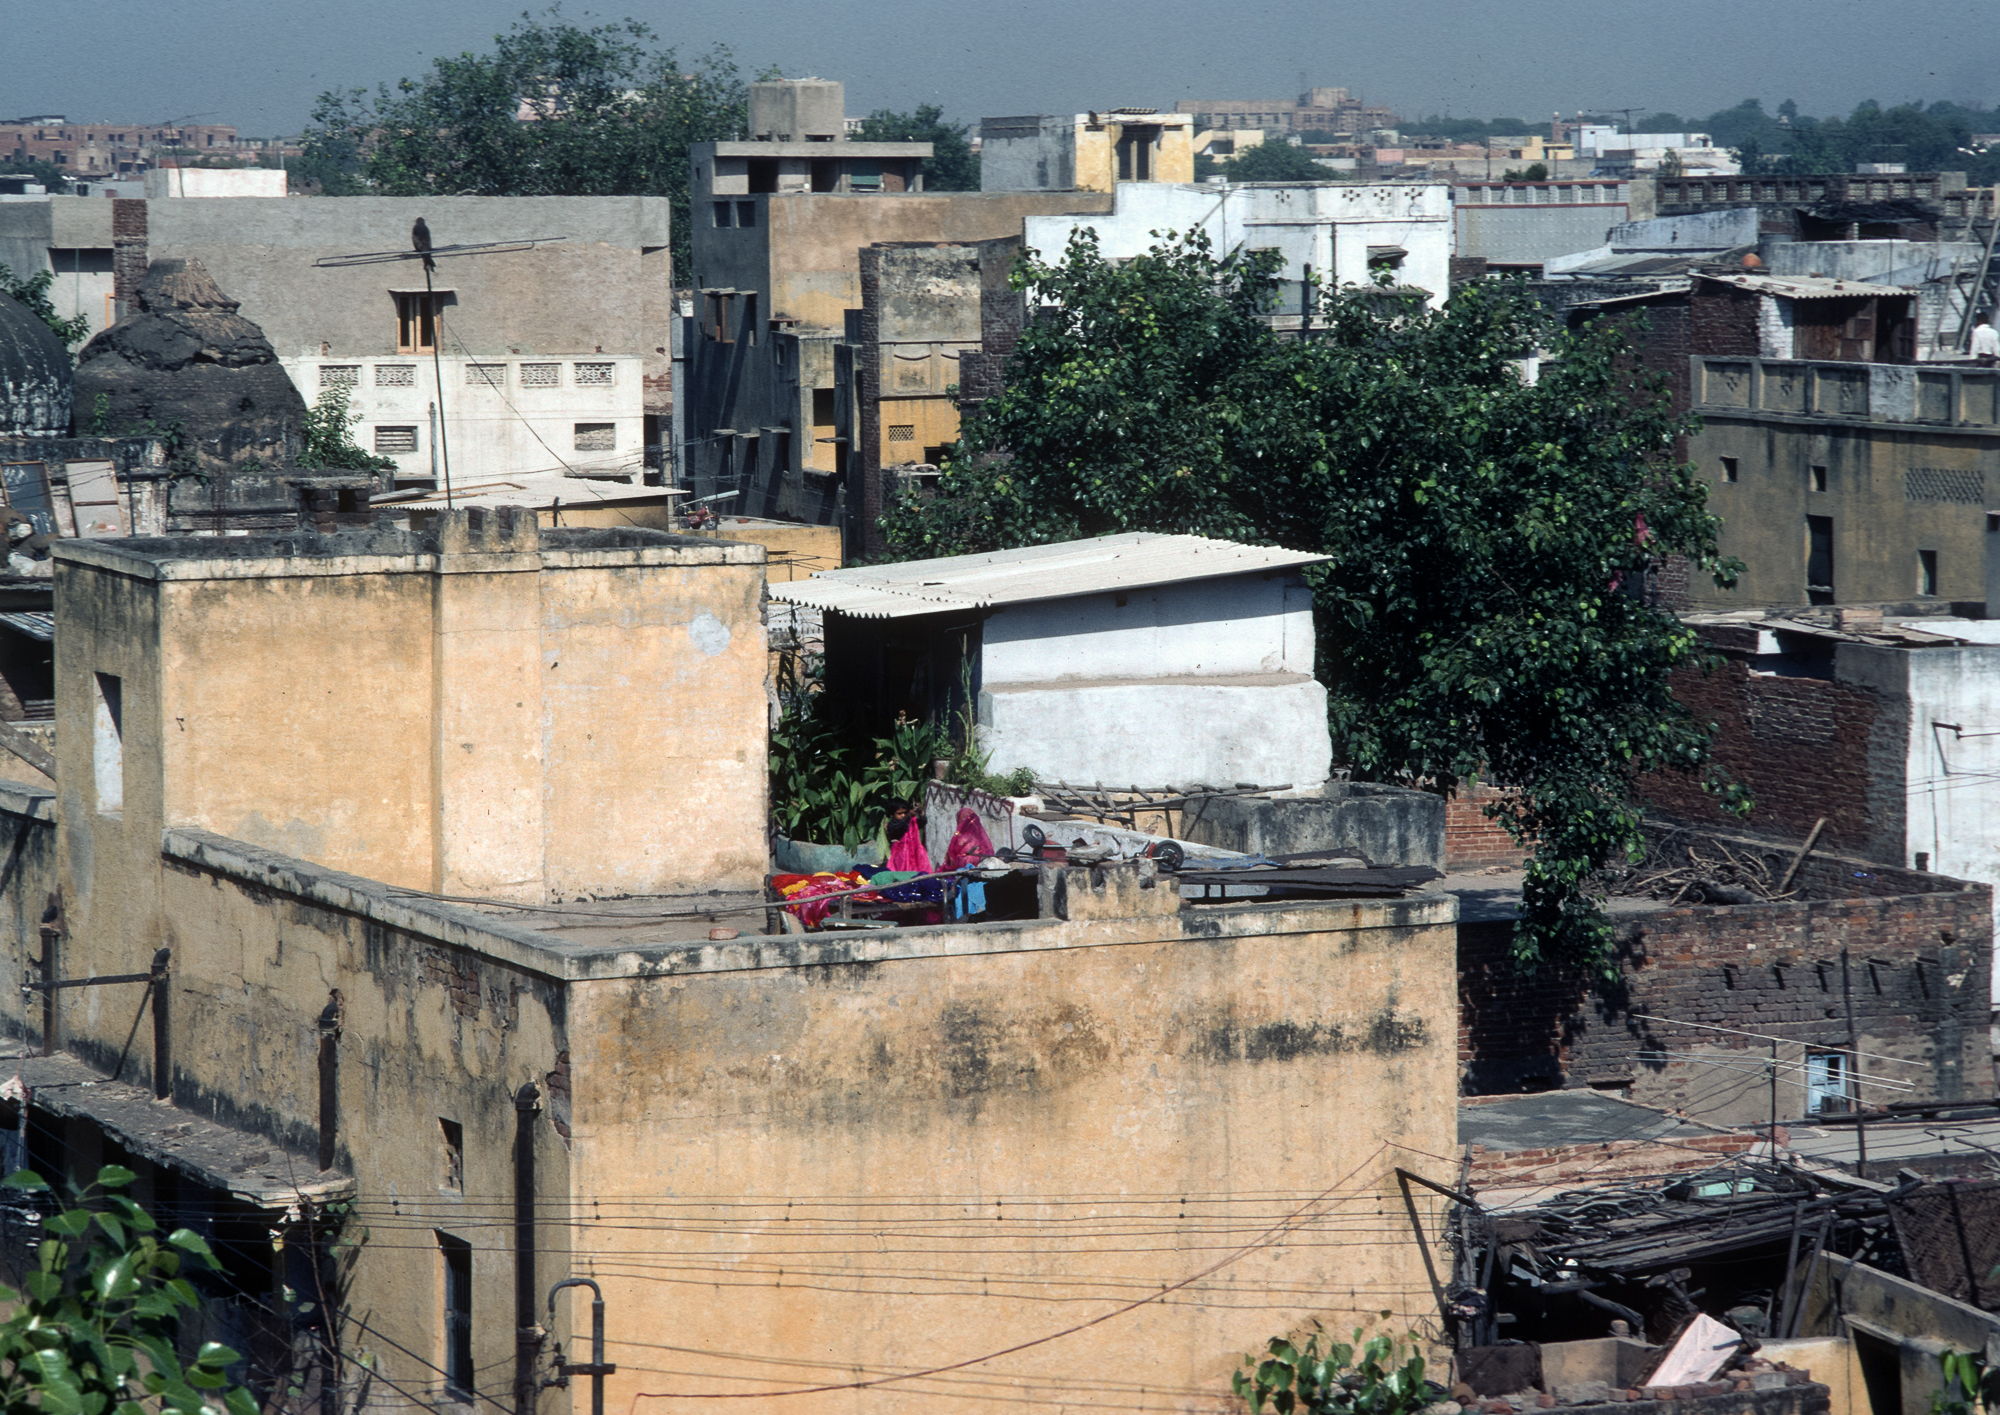 Delhi, 1983. Olympus OM-2n and Kodachrome 64.